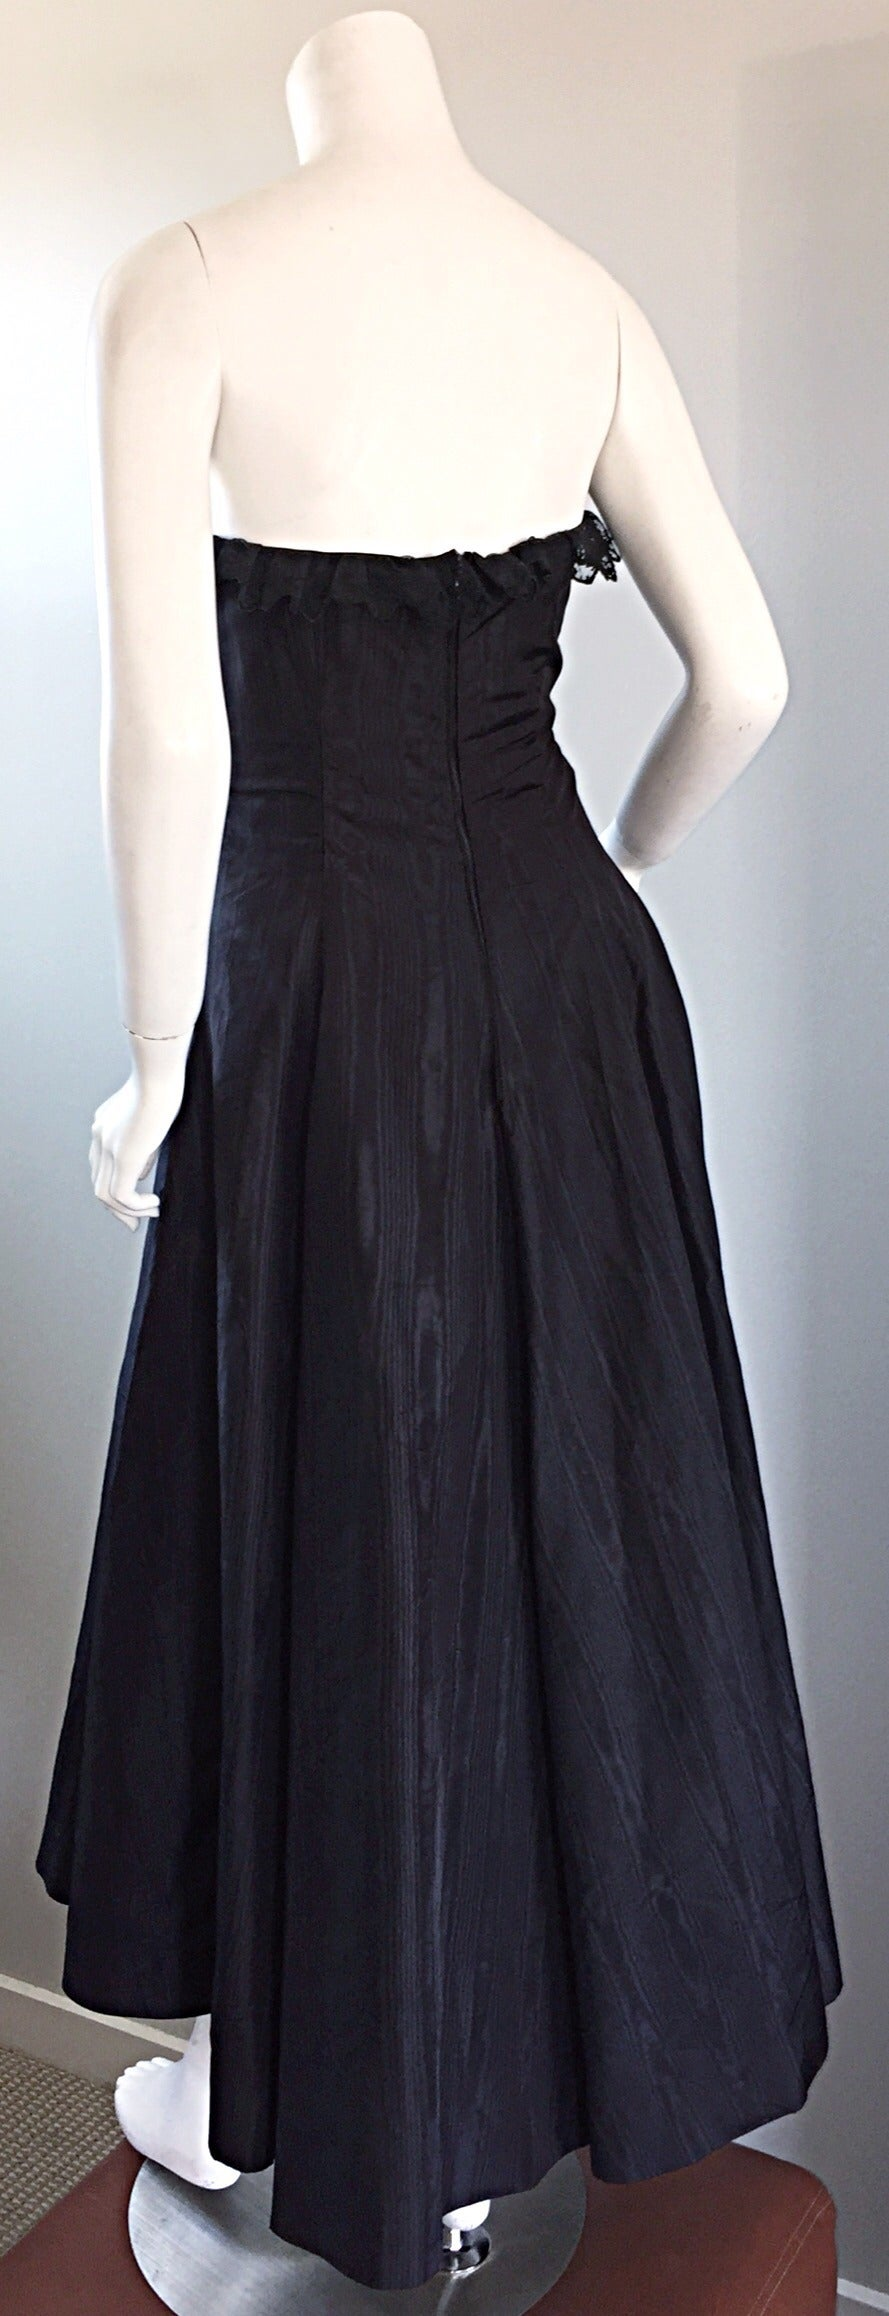 "1950s 50s Black Silk Taffeta + Lace Strapless "" New Look "" Vintage Dress 7"